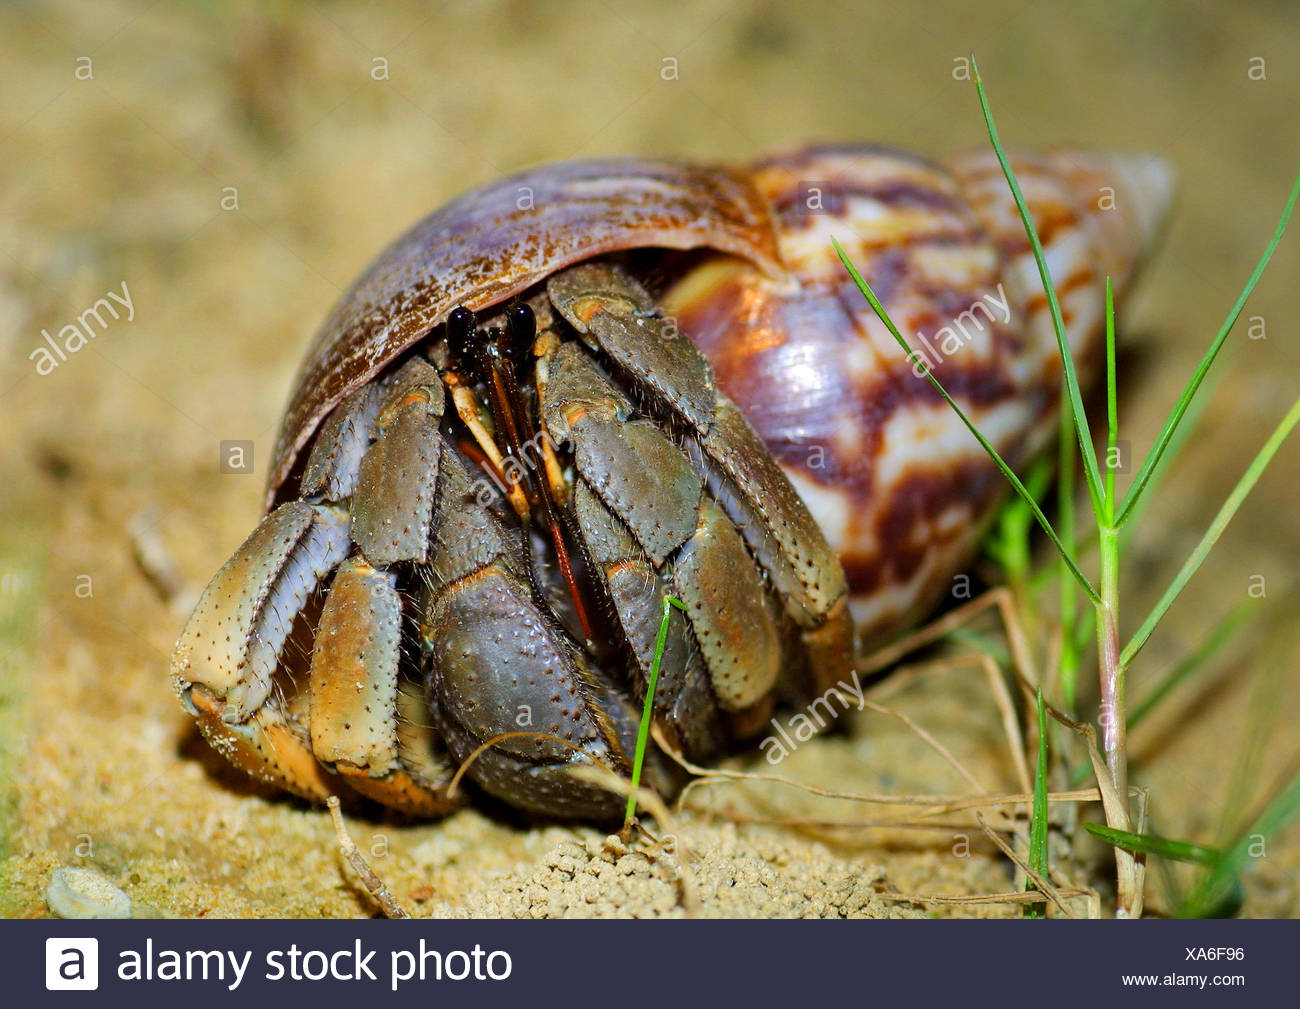 large hermit crab, common hermit crab, soldier crab, soldier hermit crab, Bernhard's hermit crab (Pagurus bernhardus, Eupagurus bernhardus), on the ground - Stock Image